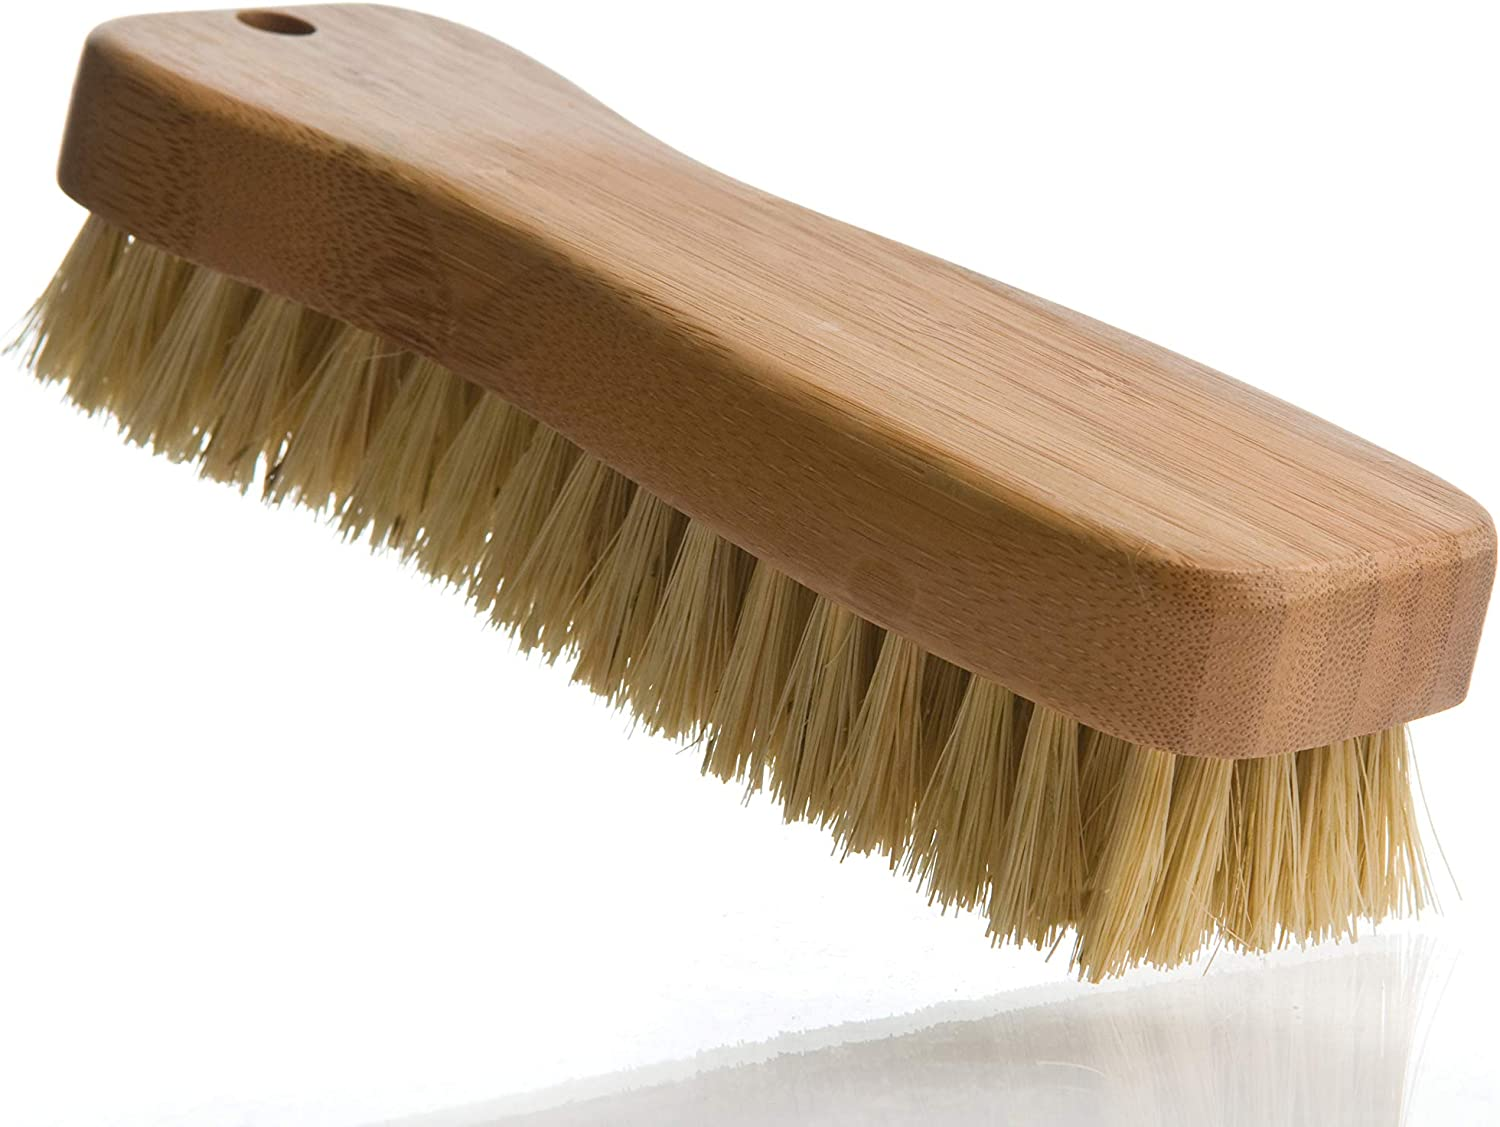 Lola Eco-Clean Tampico Bottle Brush with Bamboo Handle